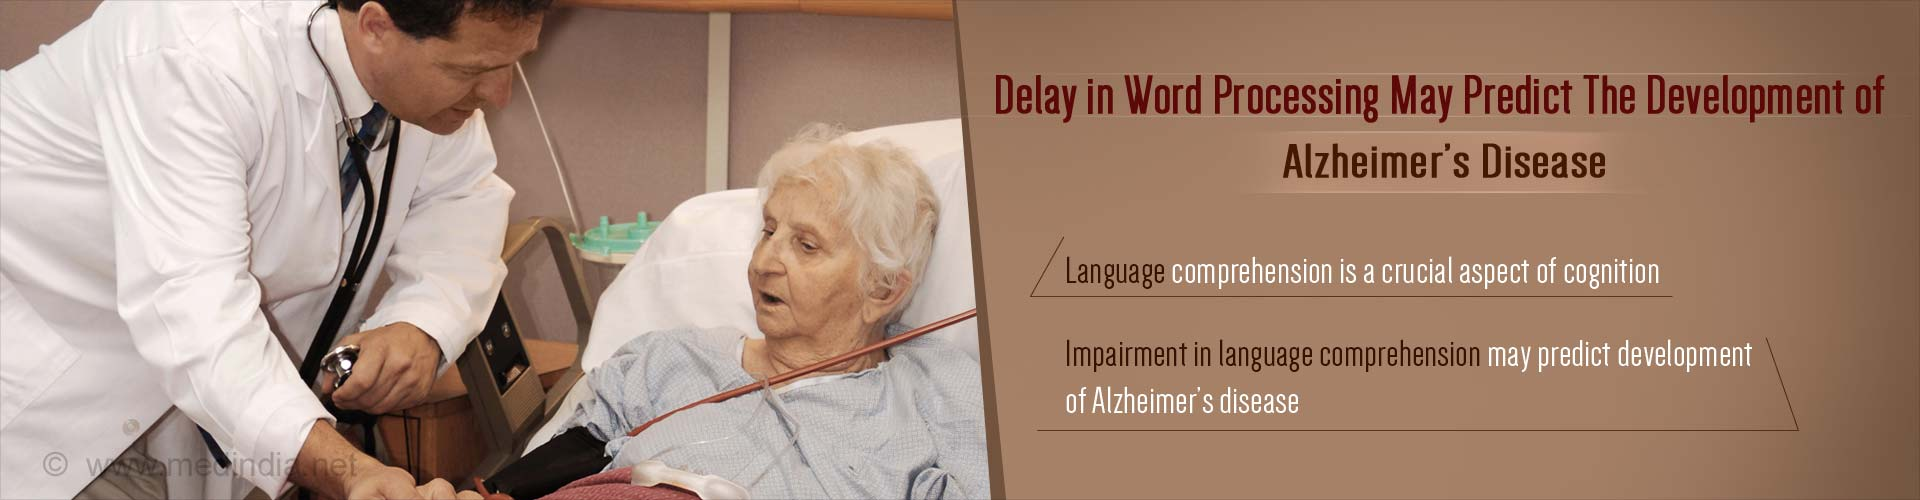 Delayed Word Processing Predicts Development of Alzheimer